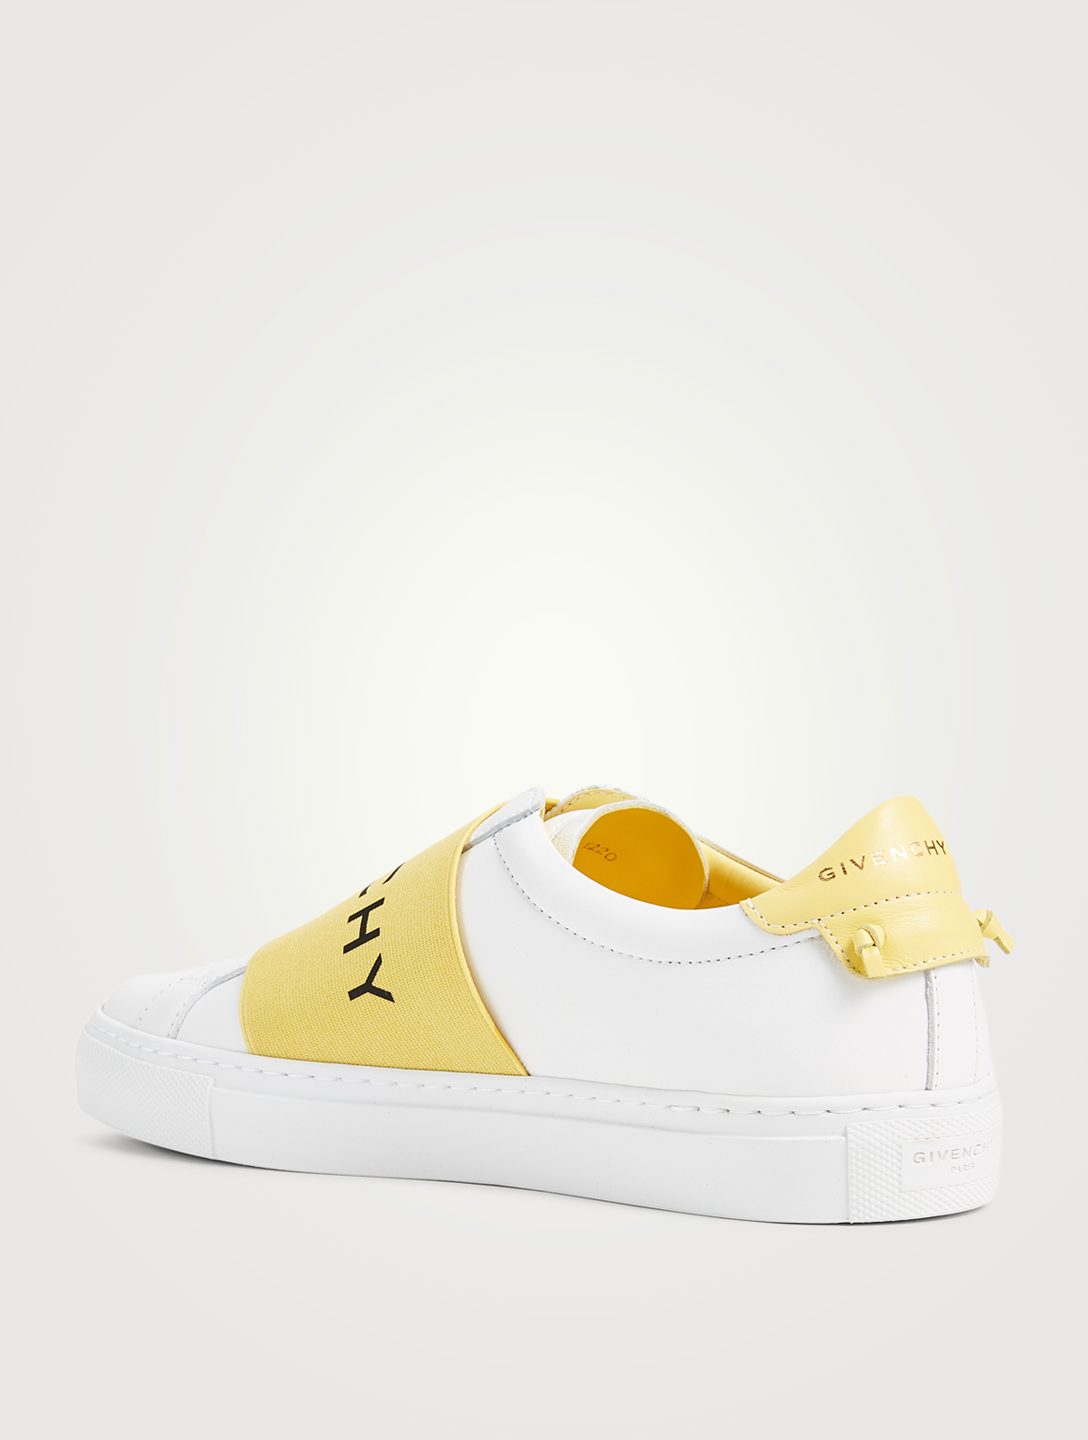 GIVENCHY Urban Street Leather Slip-On Sneakers With Logo Strap Women's Yellow